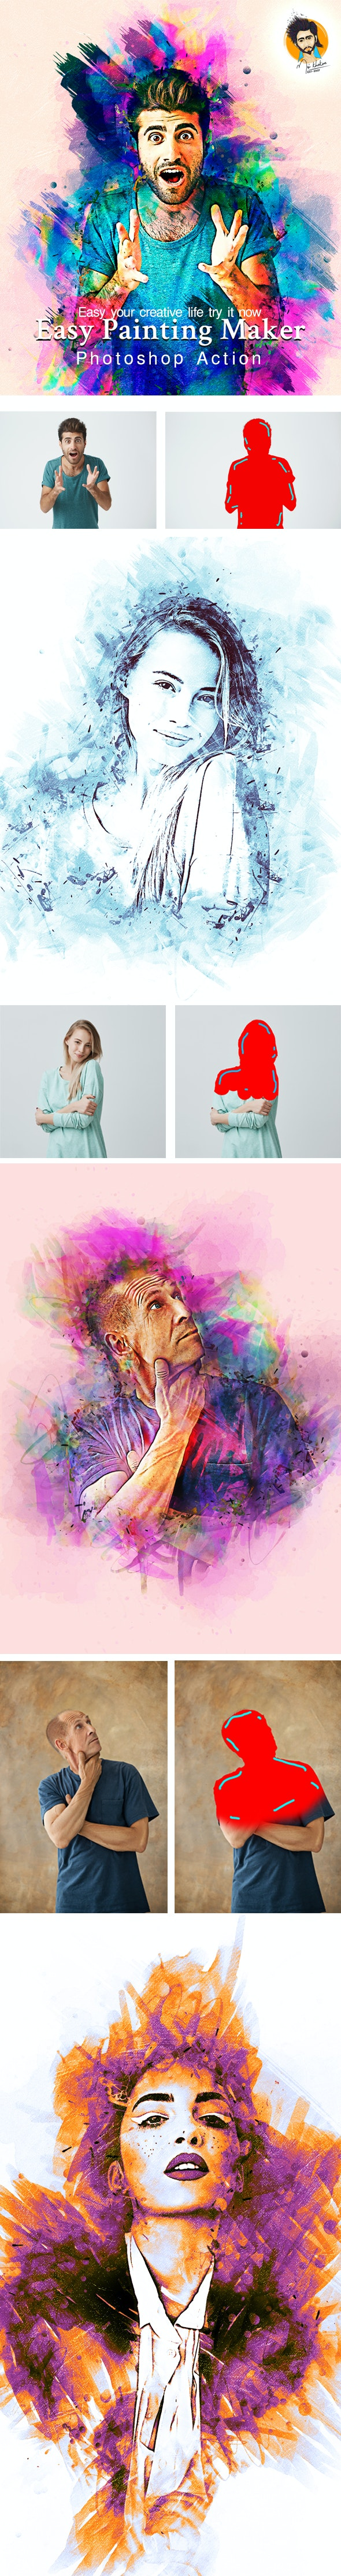 Easy Painting Maker Photoshop Action - Actions Photoshop